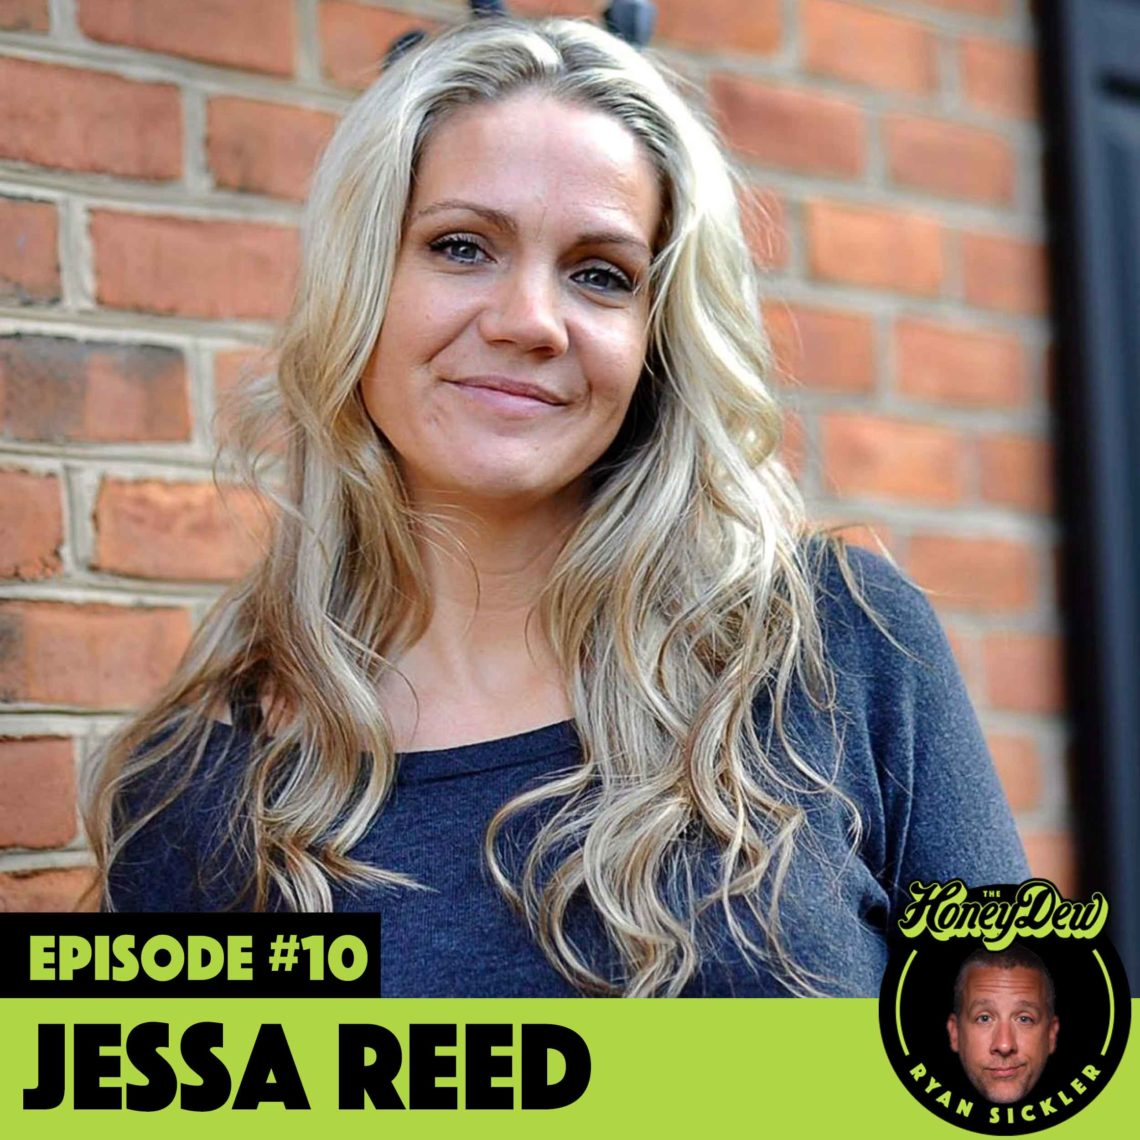 Jessa Reed The Honeydew Podcast With Ryan Sickler Jessa reed has 15 books on goodreads with 53 ratings. jessa reed the honeydew podcast with